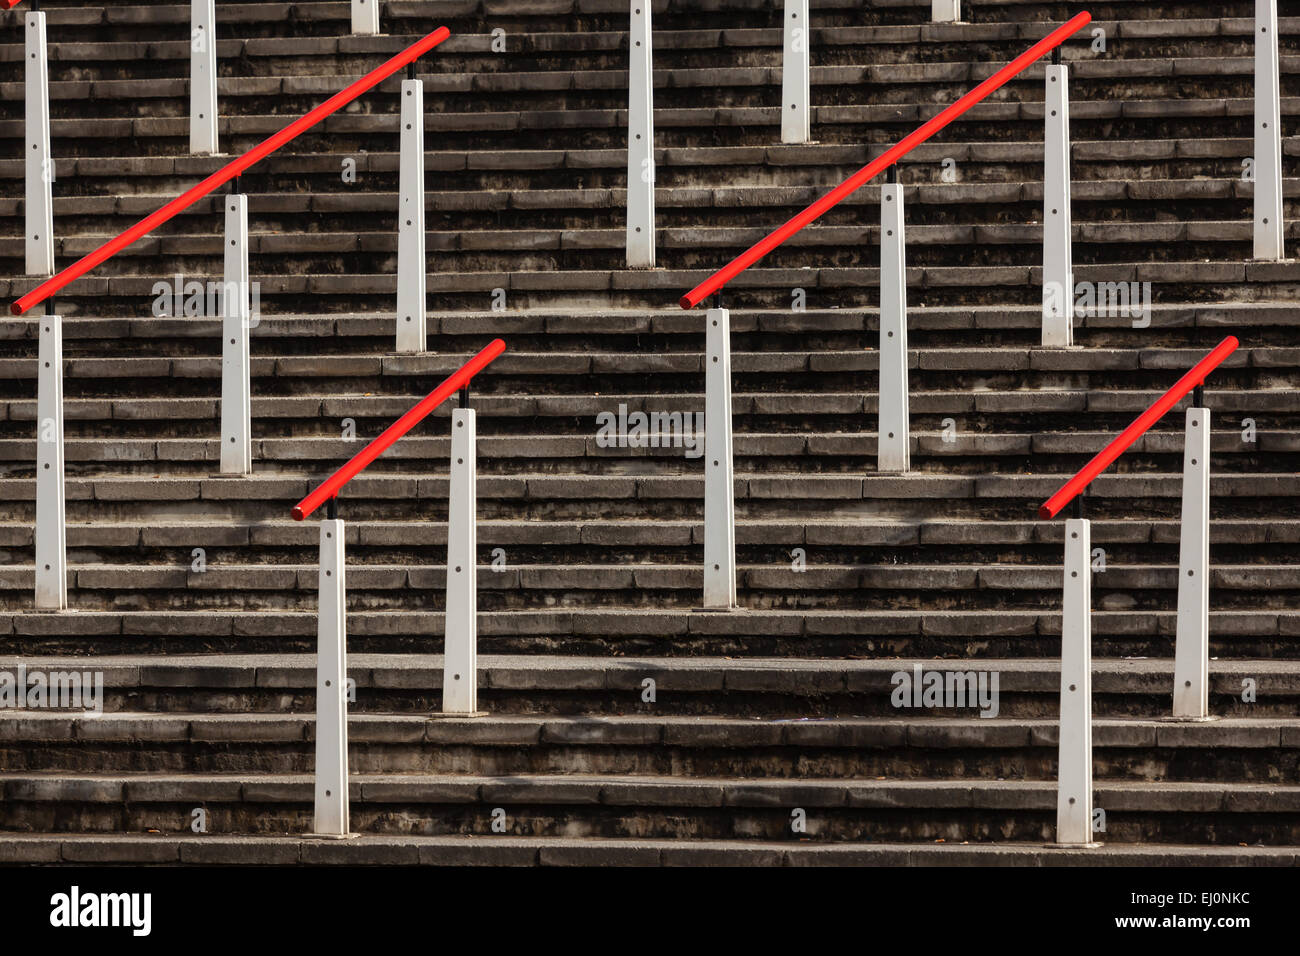 Steps with handlebars by Excel building, London - Stock Image